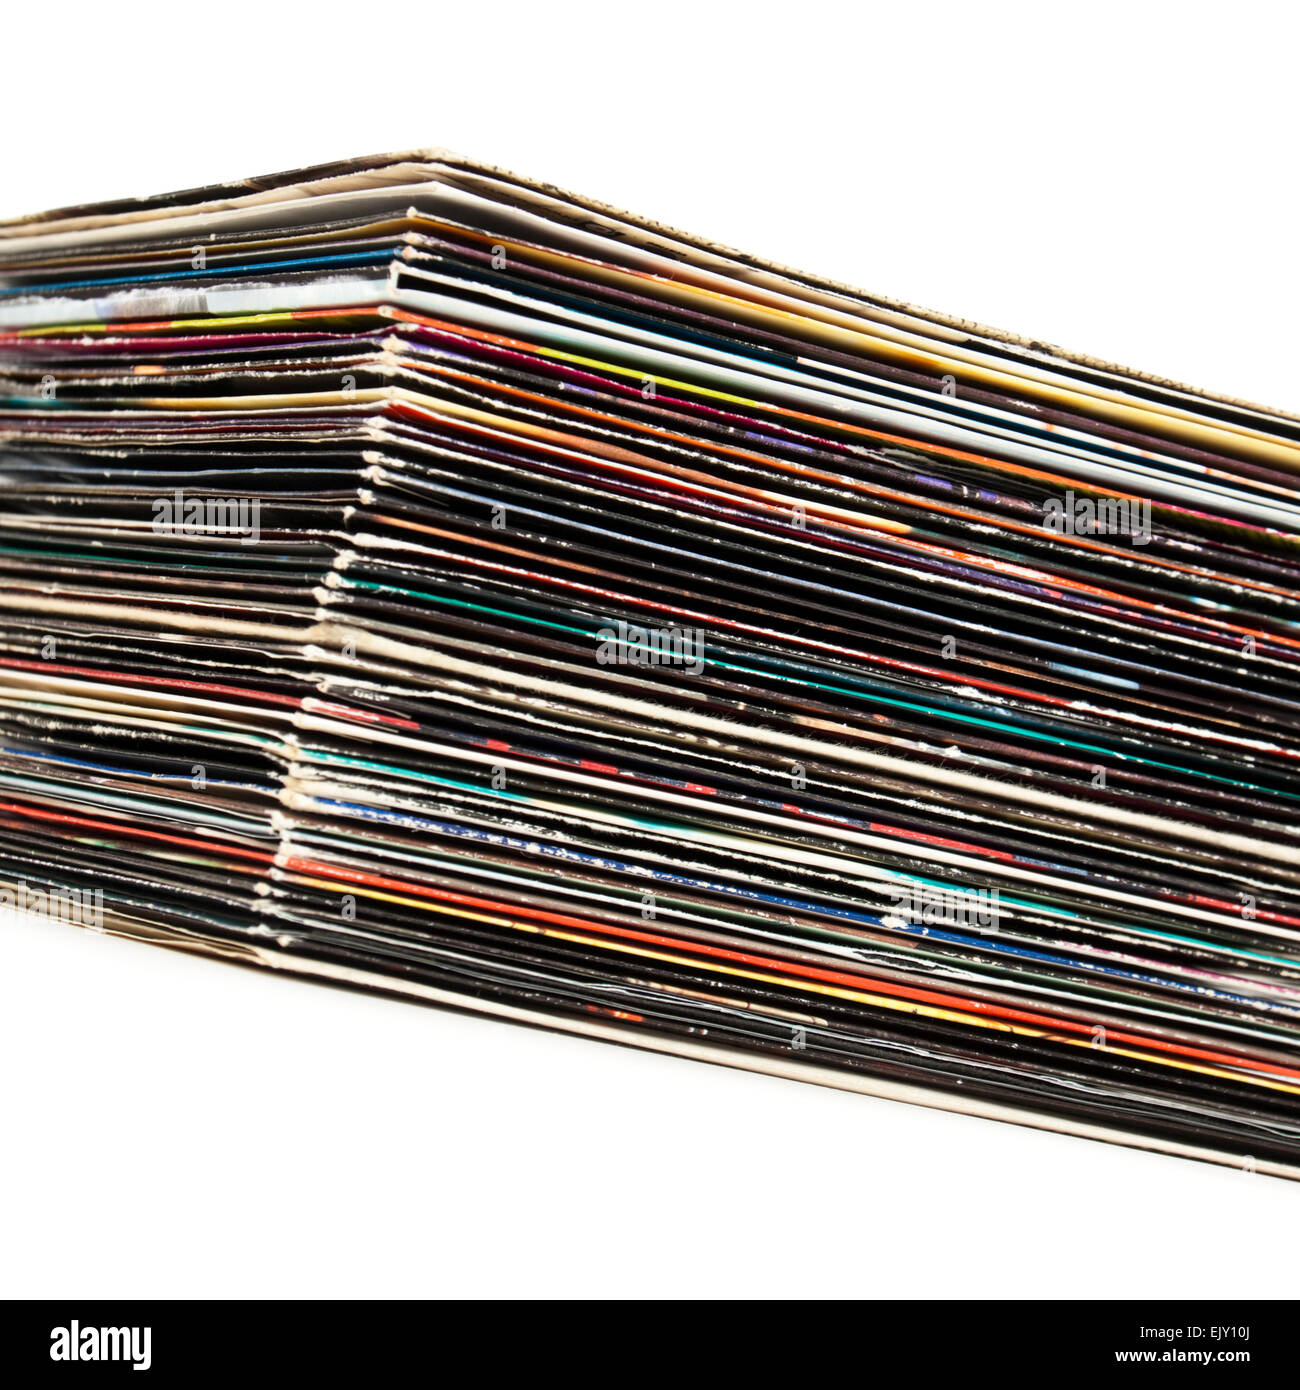 Collection of vintage 7' vinyl records / singles - Stock Image